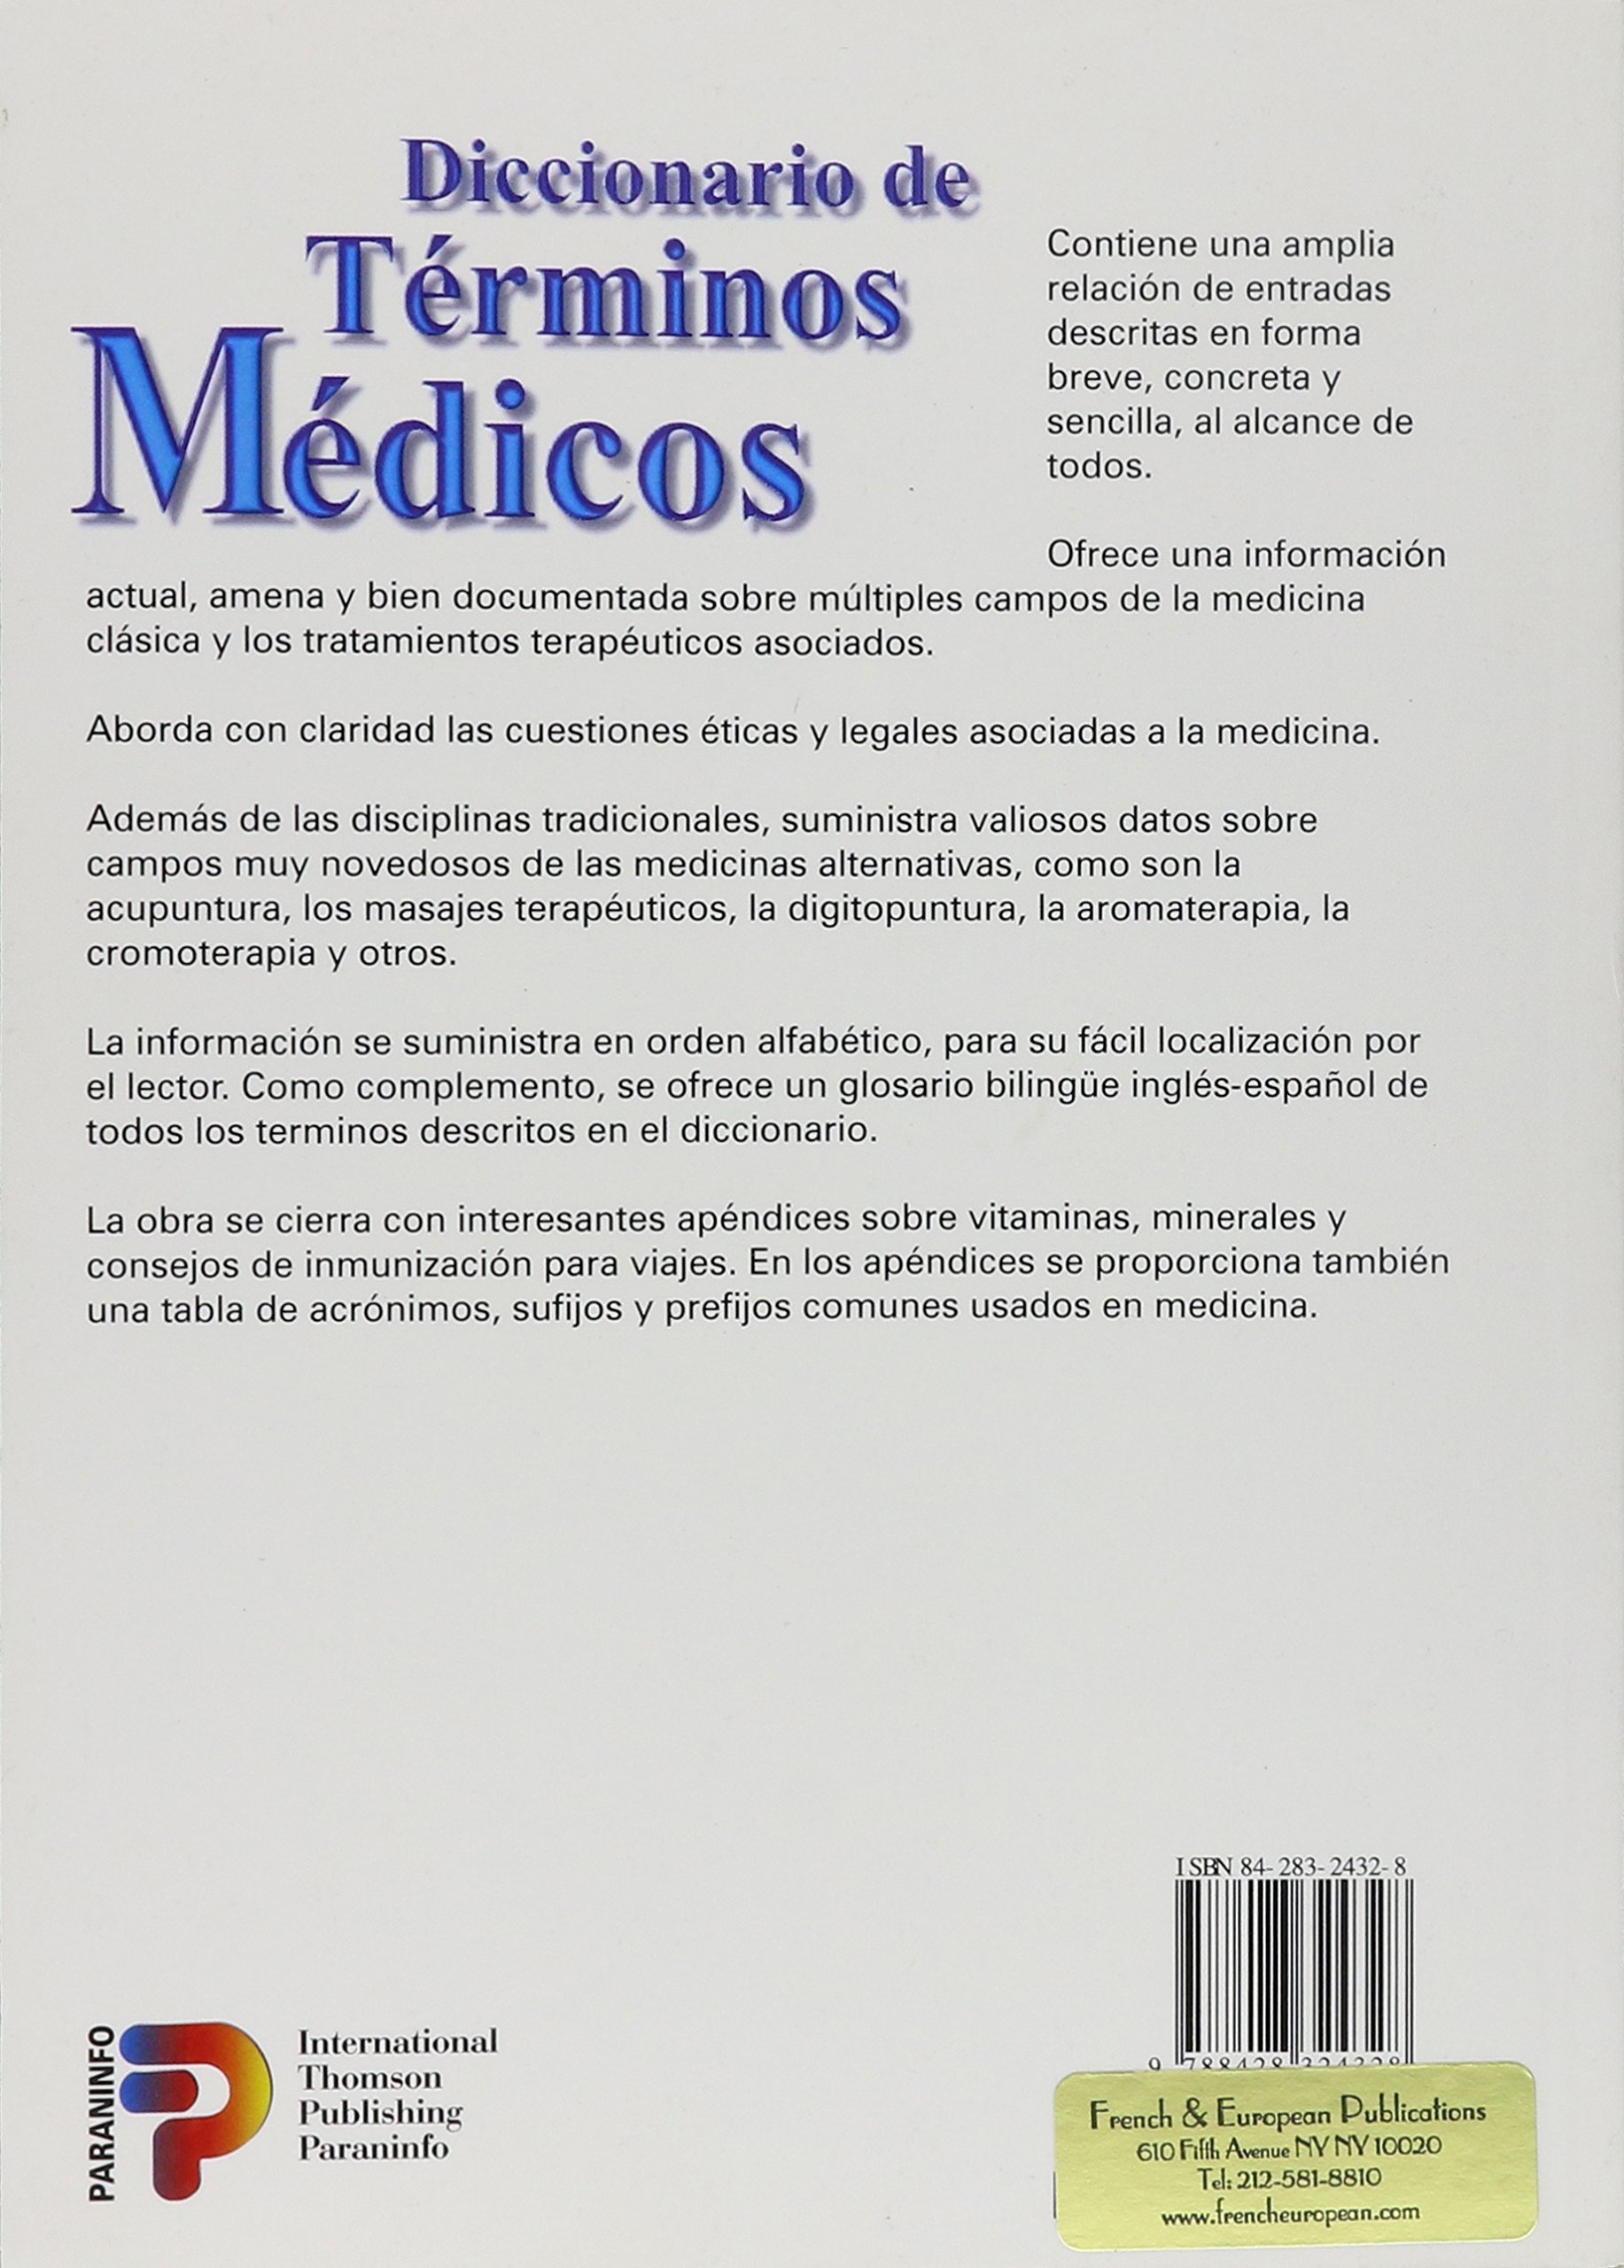 Diccionario de terminos medicos español-ingles: Amazon.es: Helicon Publishing Ltd: Libros